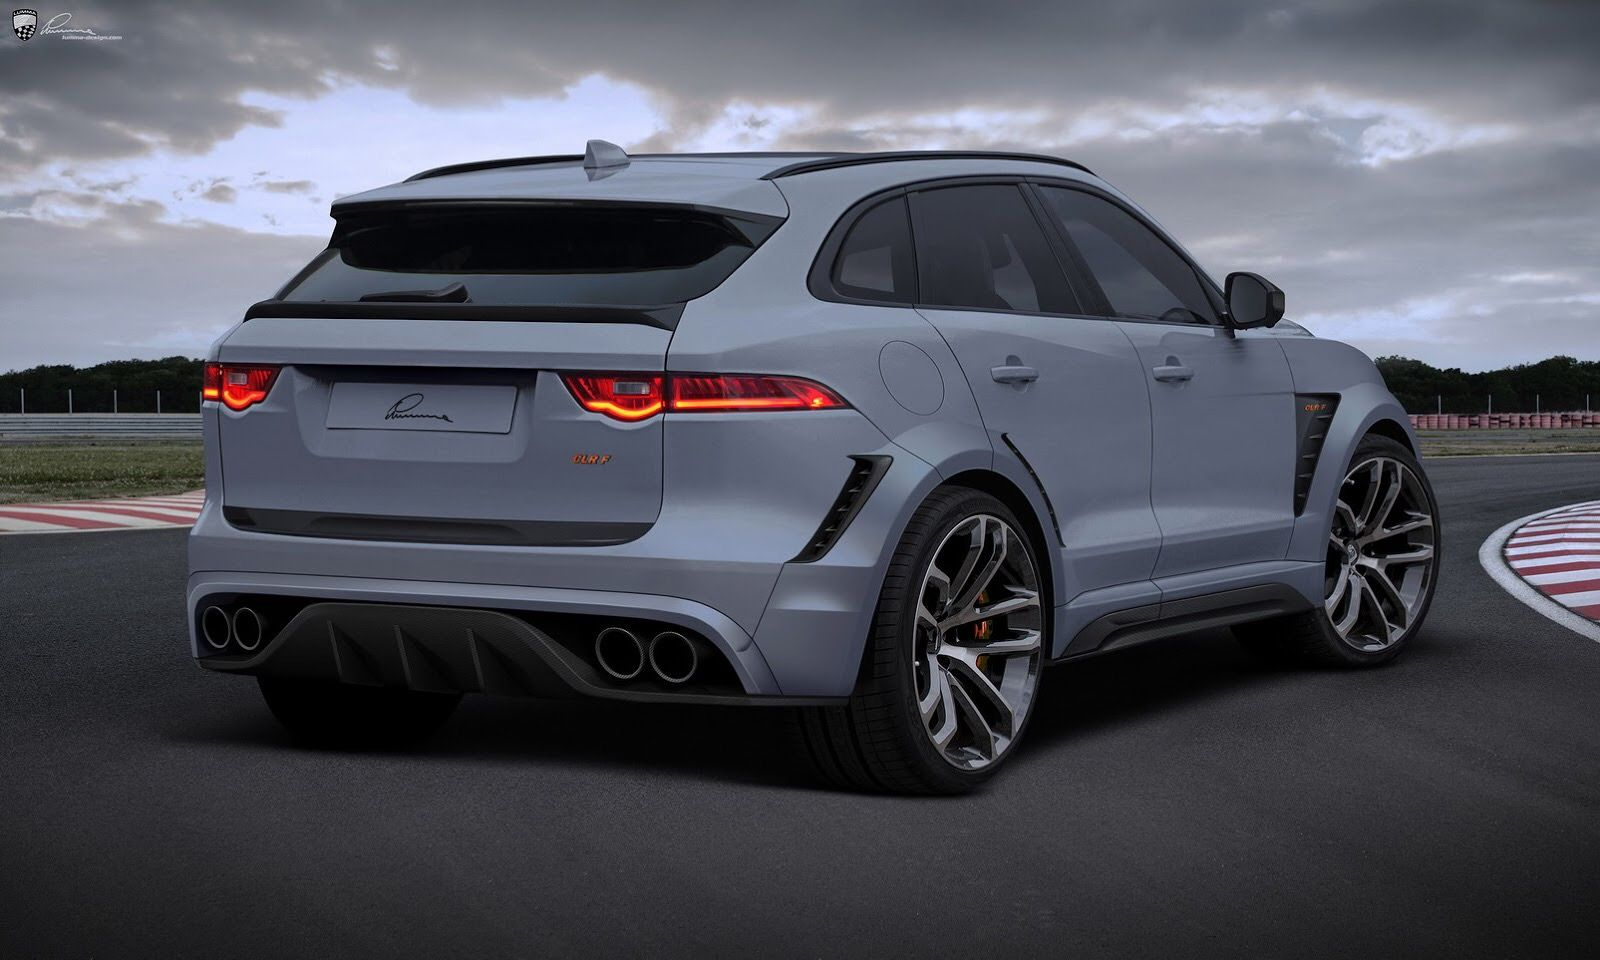 Jaguar F Pace With Images Jaguar Suv Best Suv Best Suv To Buy